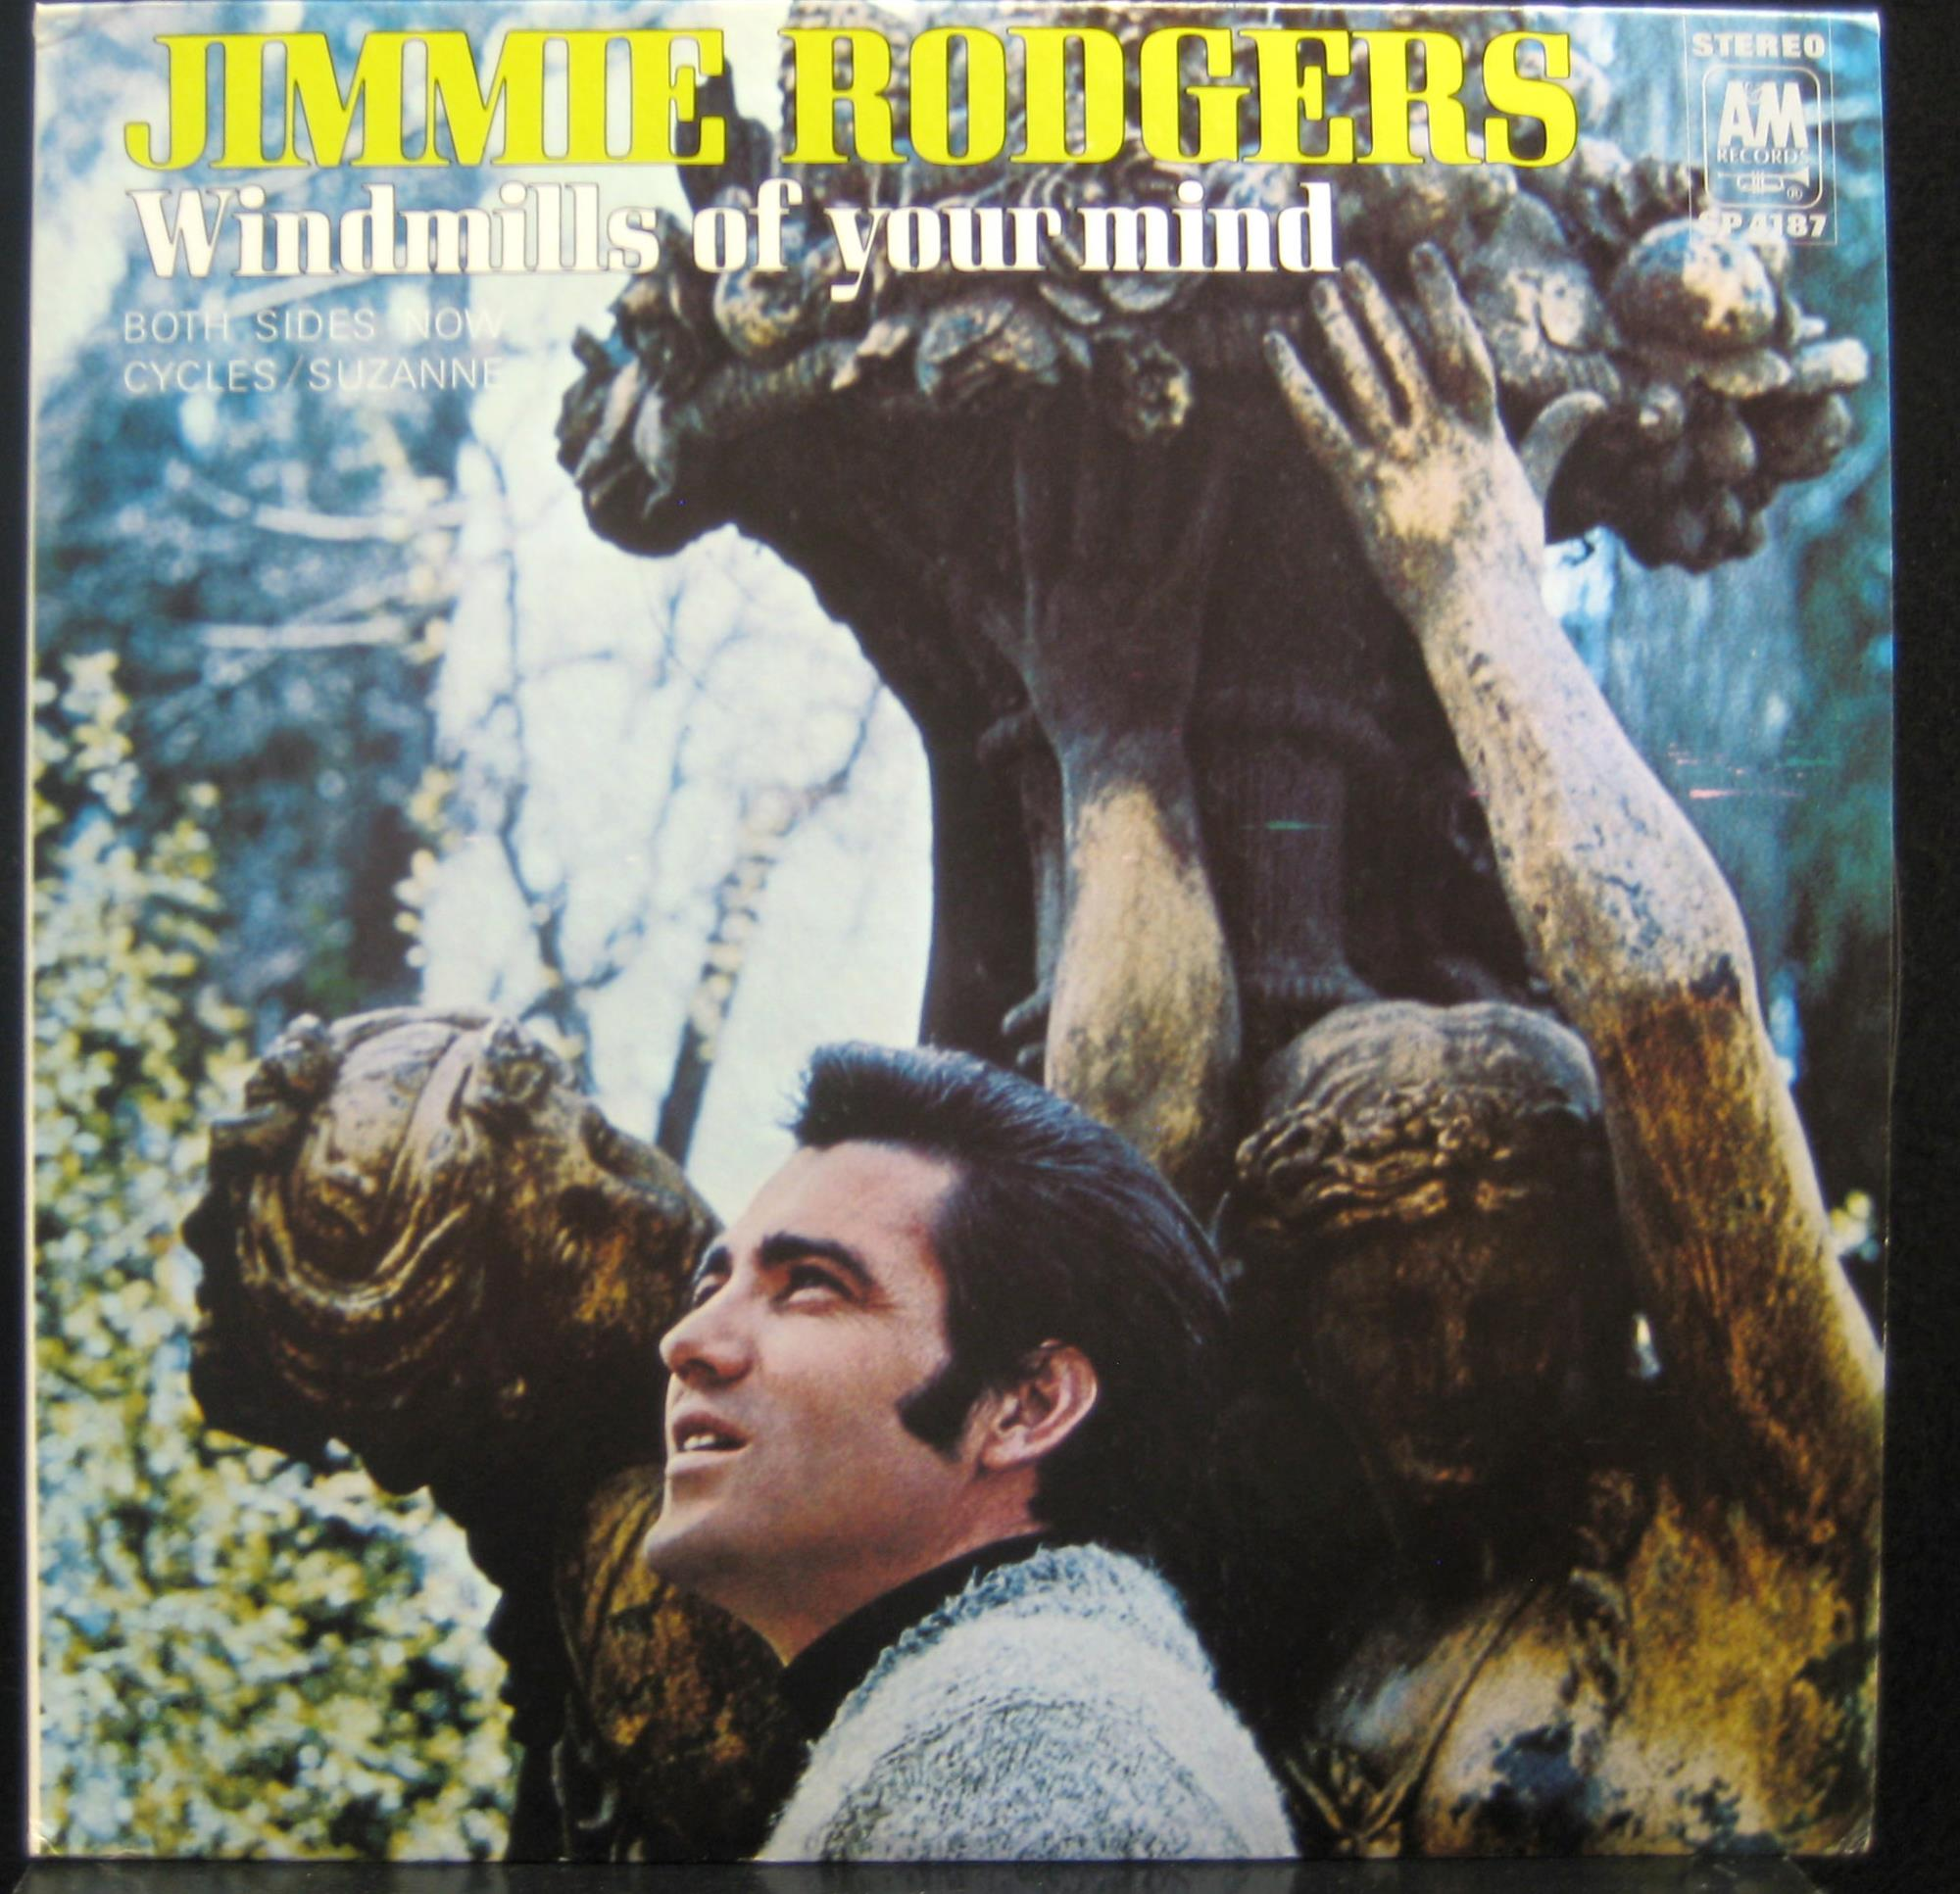 JIMMIE RODGERS - Windmills Of Your Mind Album